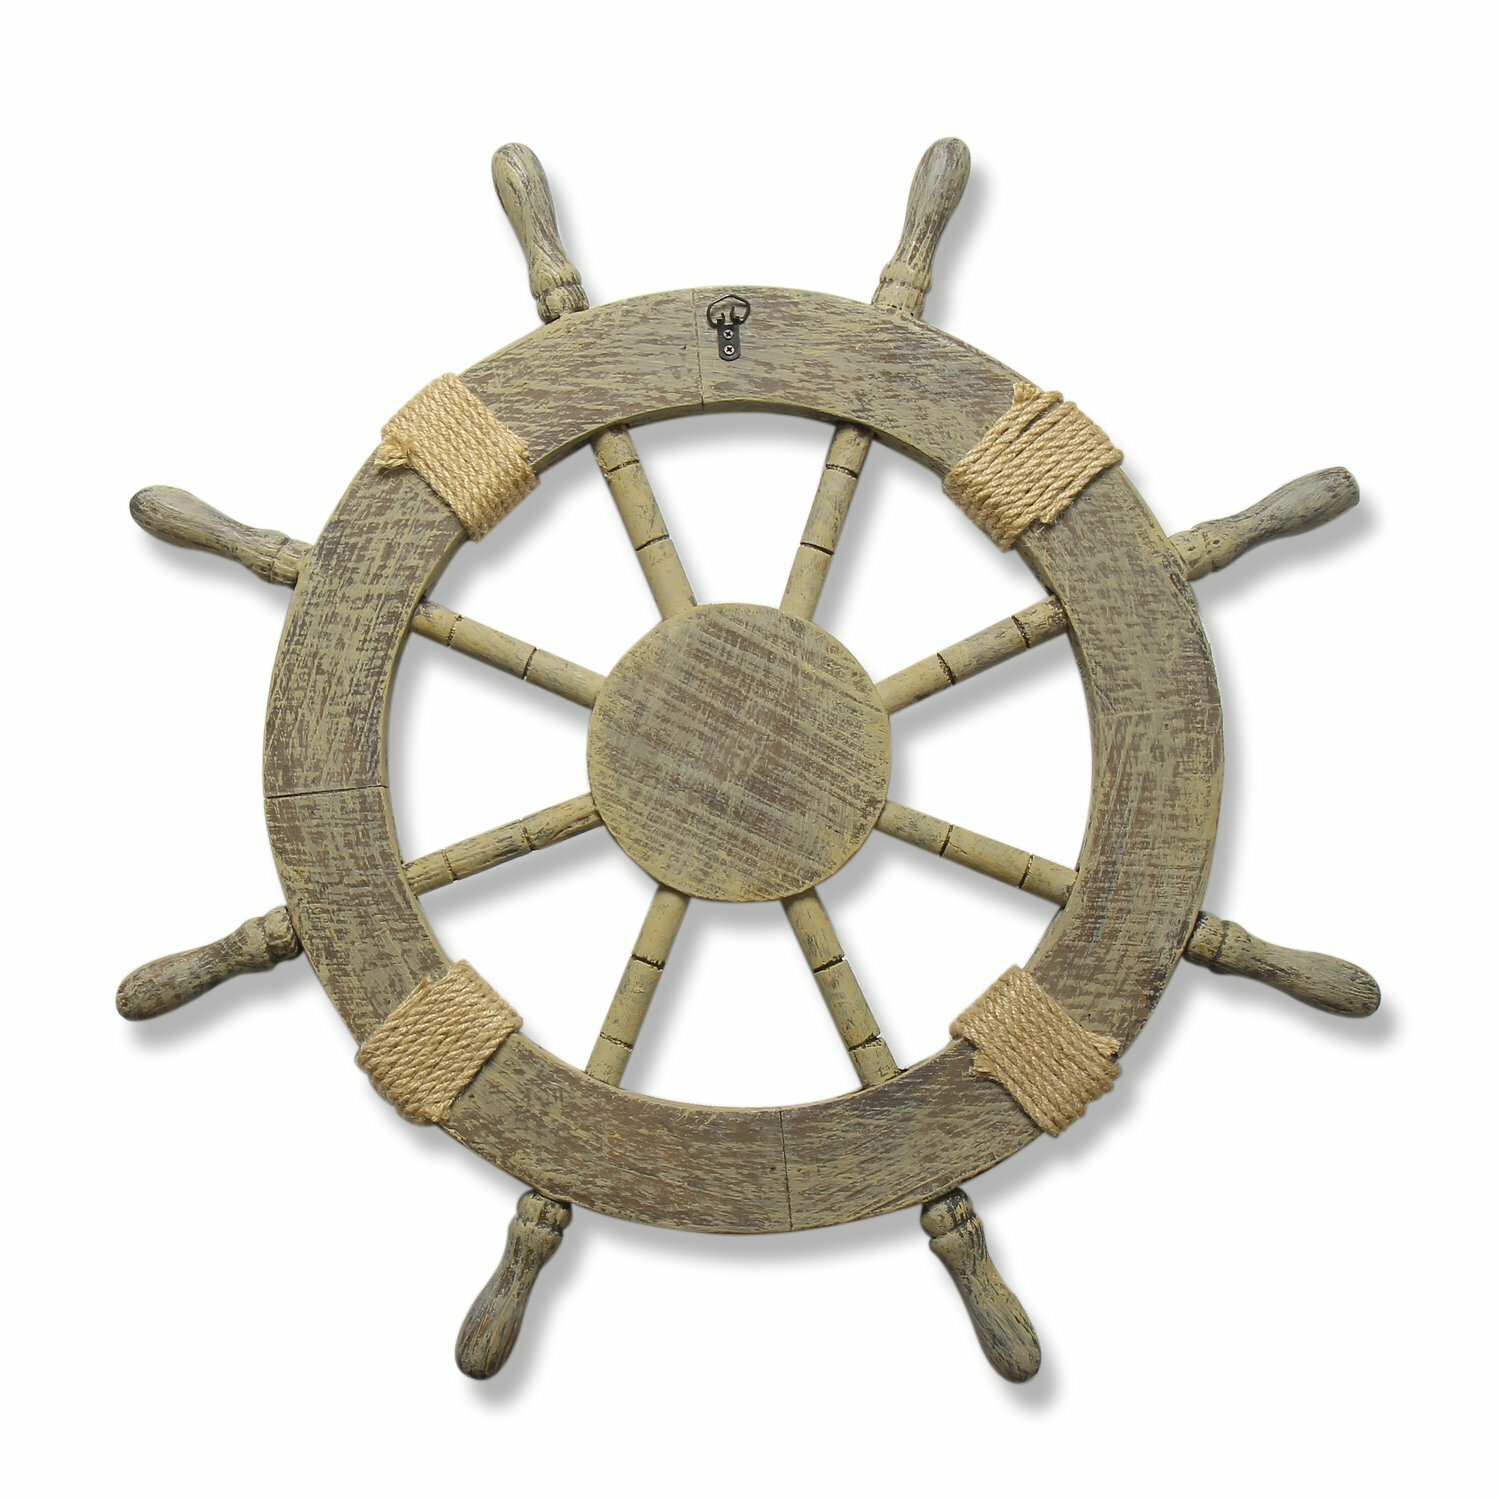 Nautical Wheel Decor: AdecoTrading Ornamental Nautical Ship Steering Wheel Home